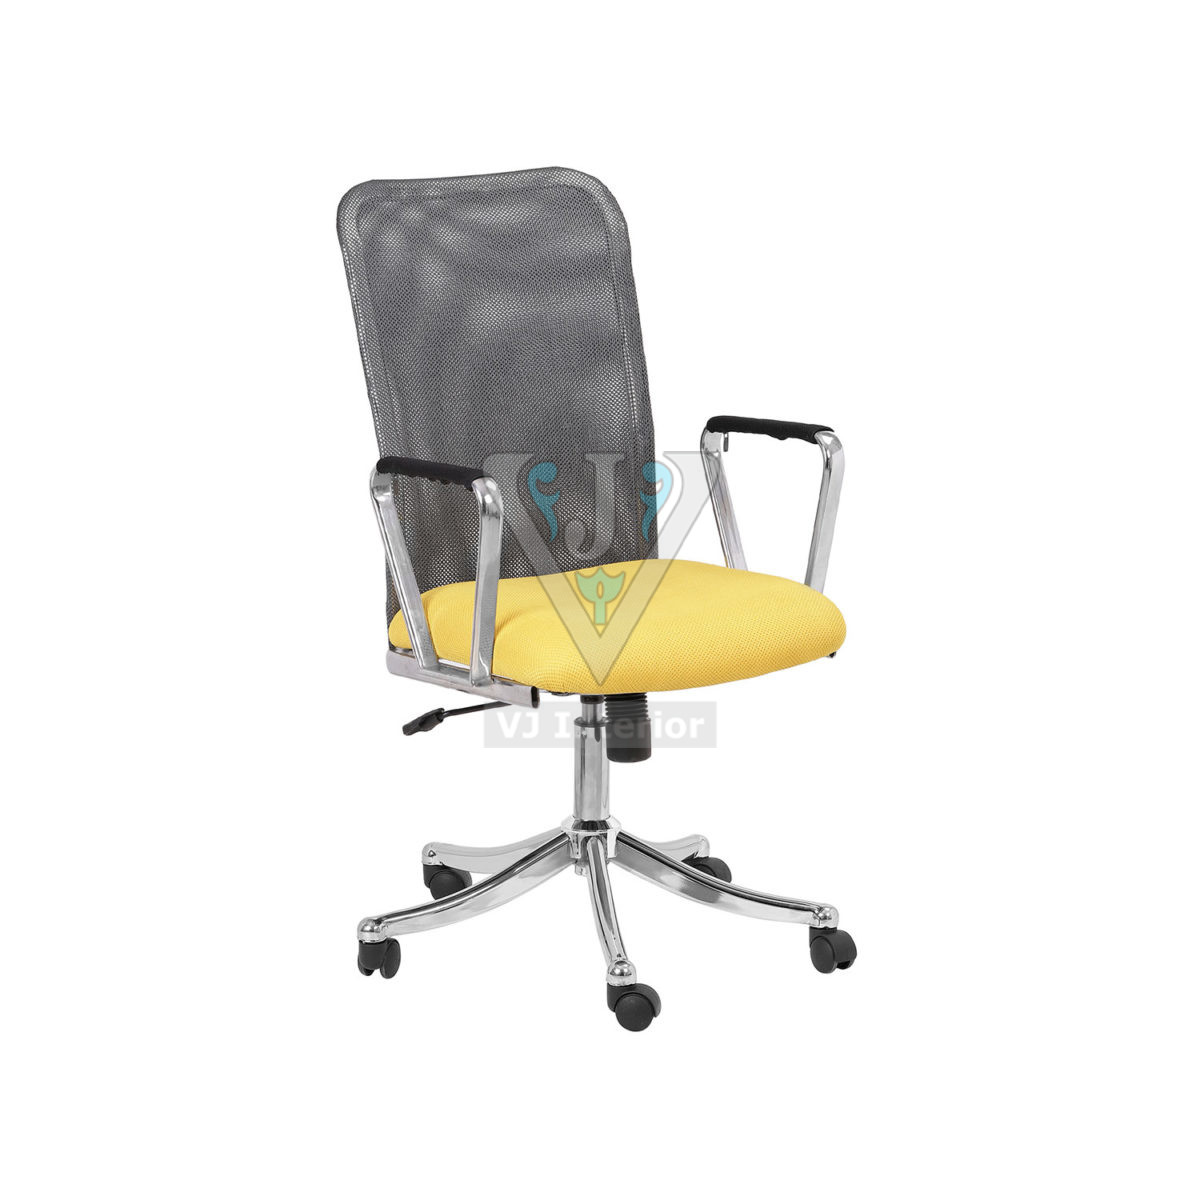 Mesh Fabric Office Visitor Chair With SS finish